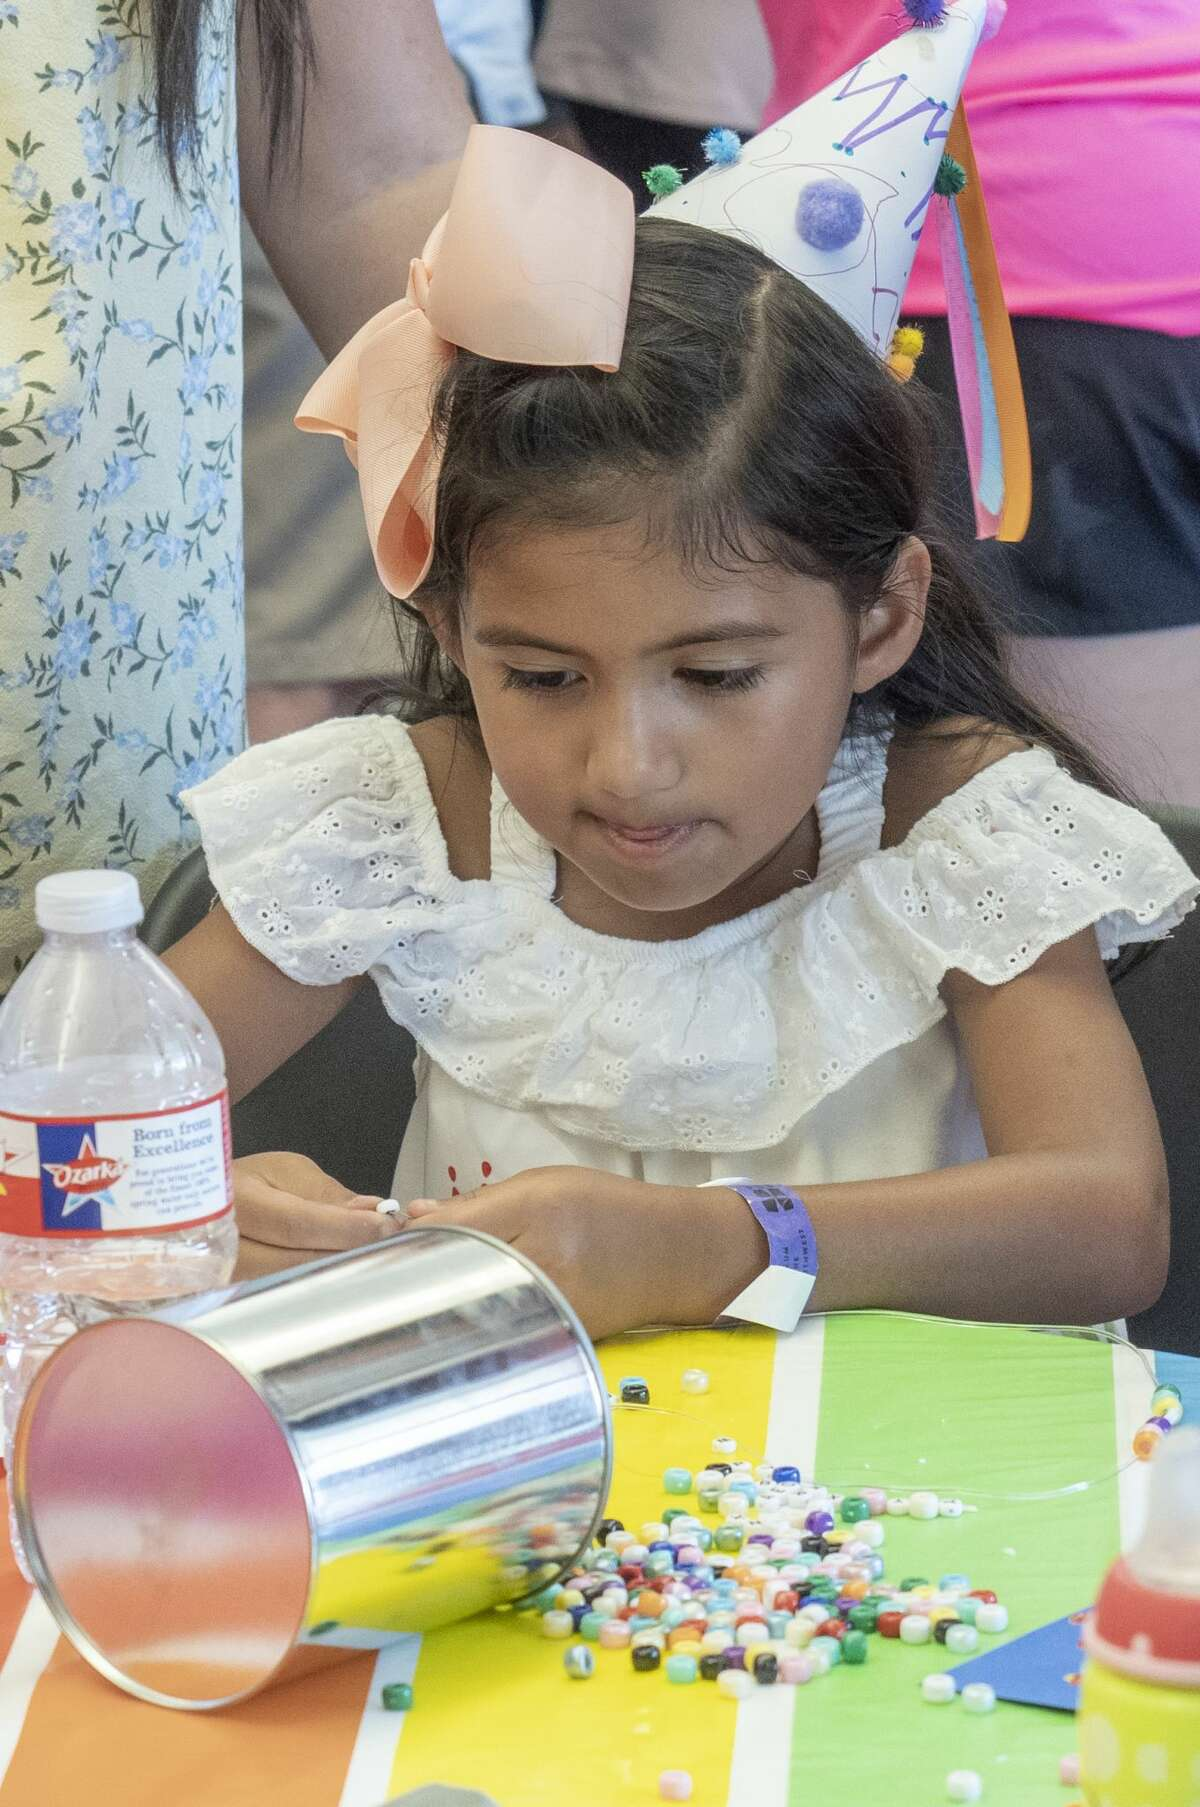 Emma Claire Guzman works on making a necklace in the kinderfest area 09/07/19 during Septemberfest at Museum of the Southwest. Tim Fischer/Reporter-Telegram